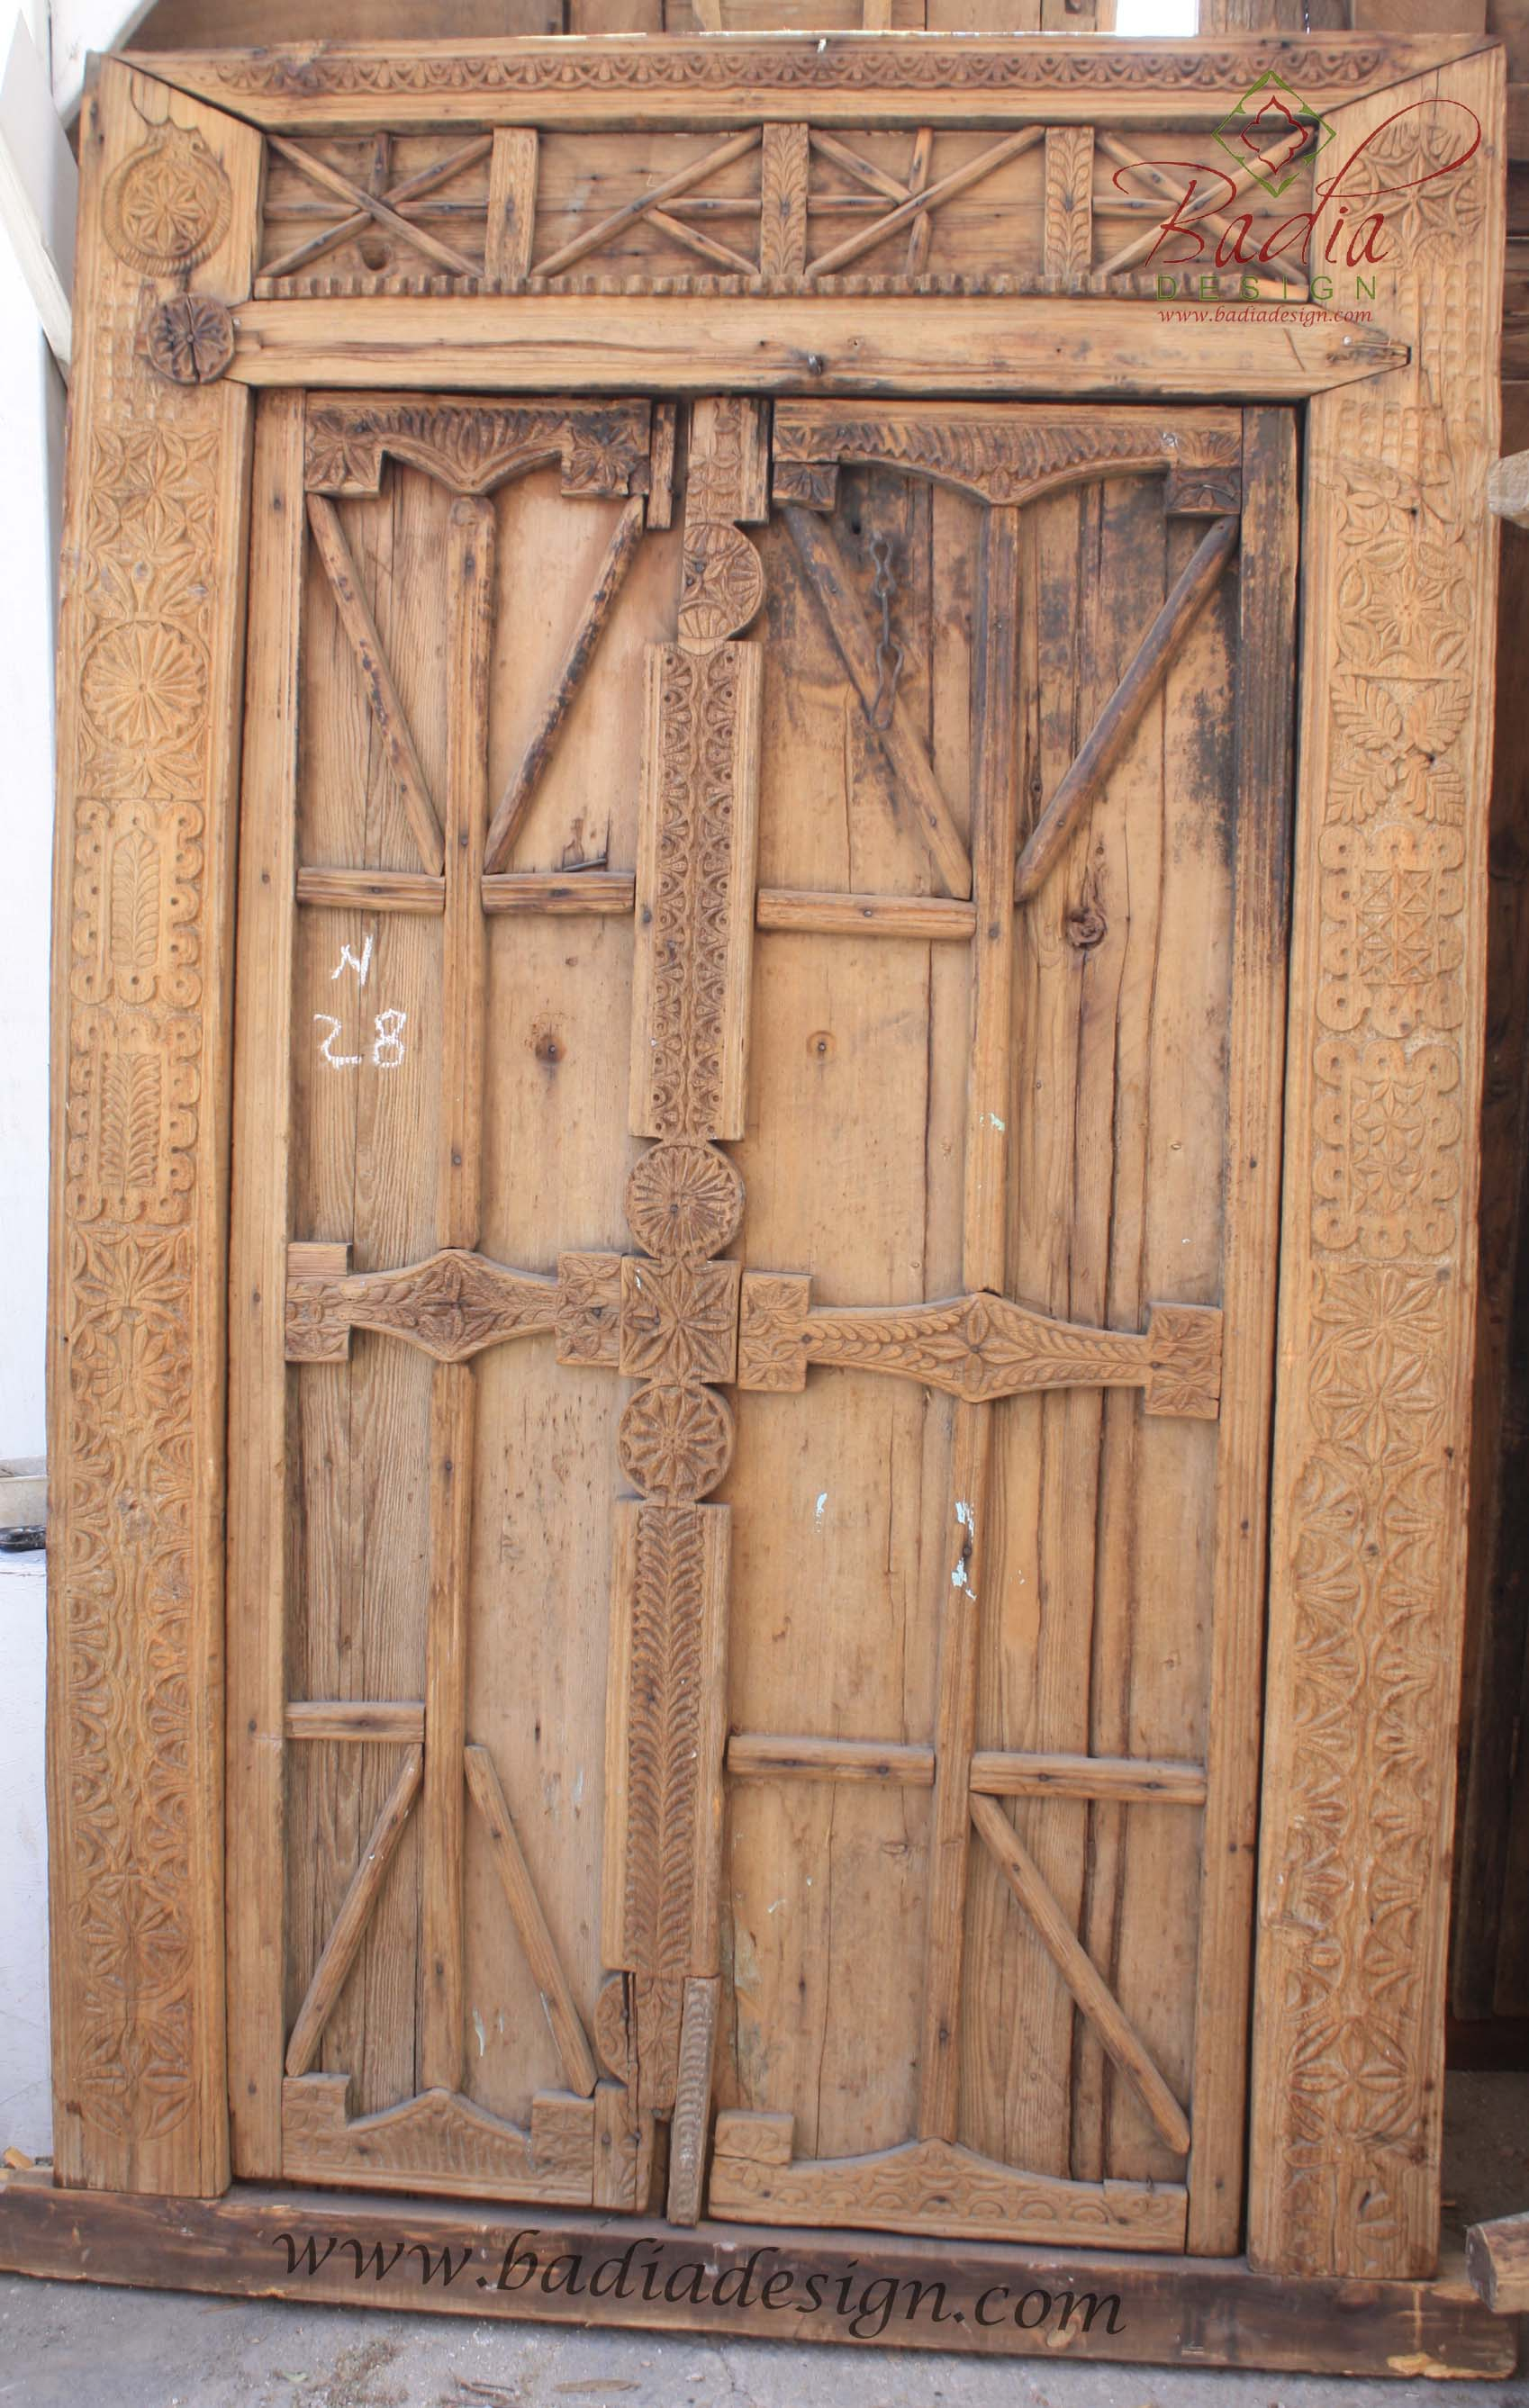 old-wooden-door-cwd011.jpg